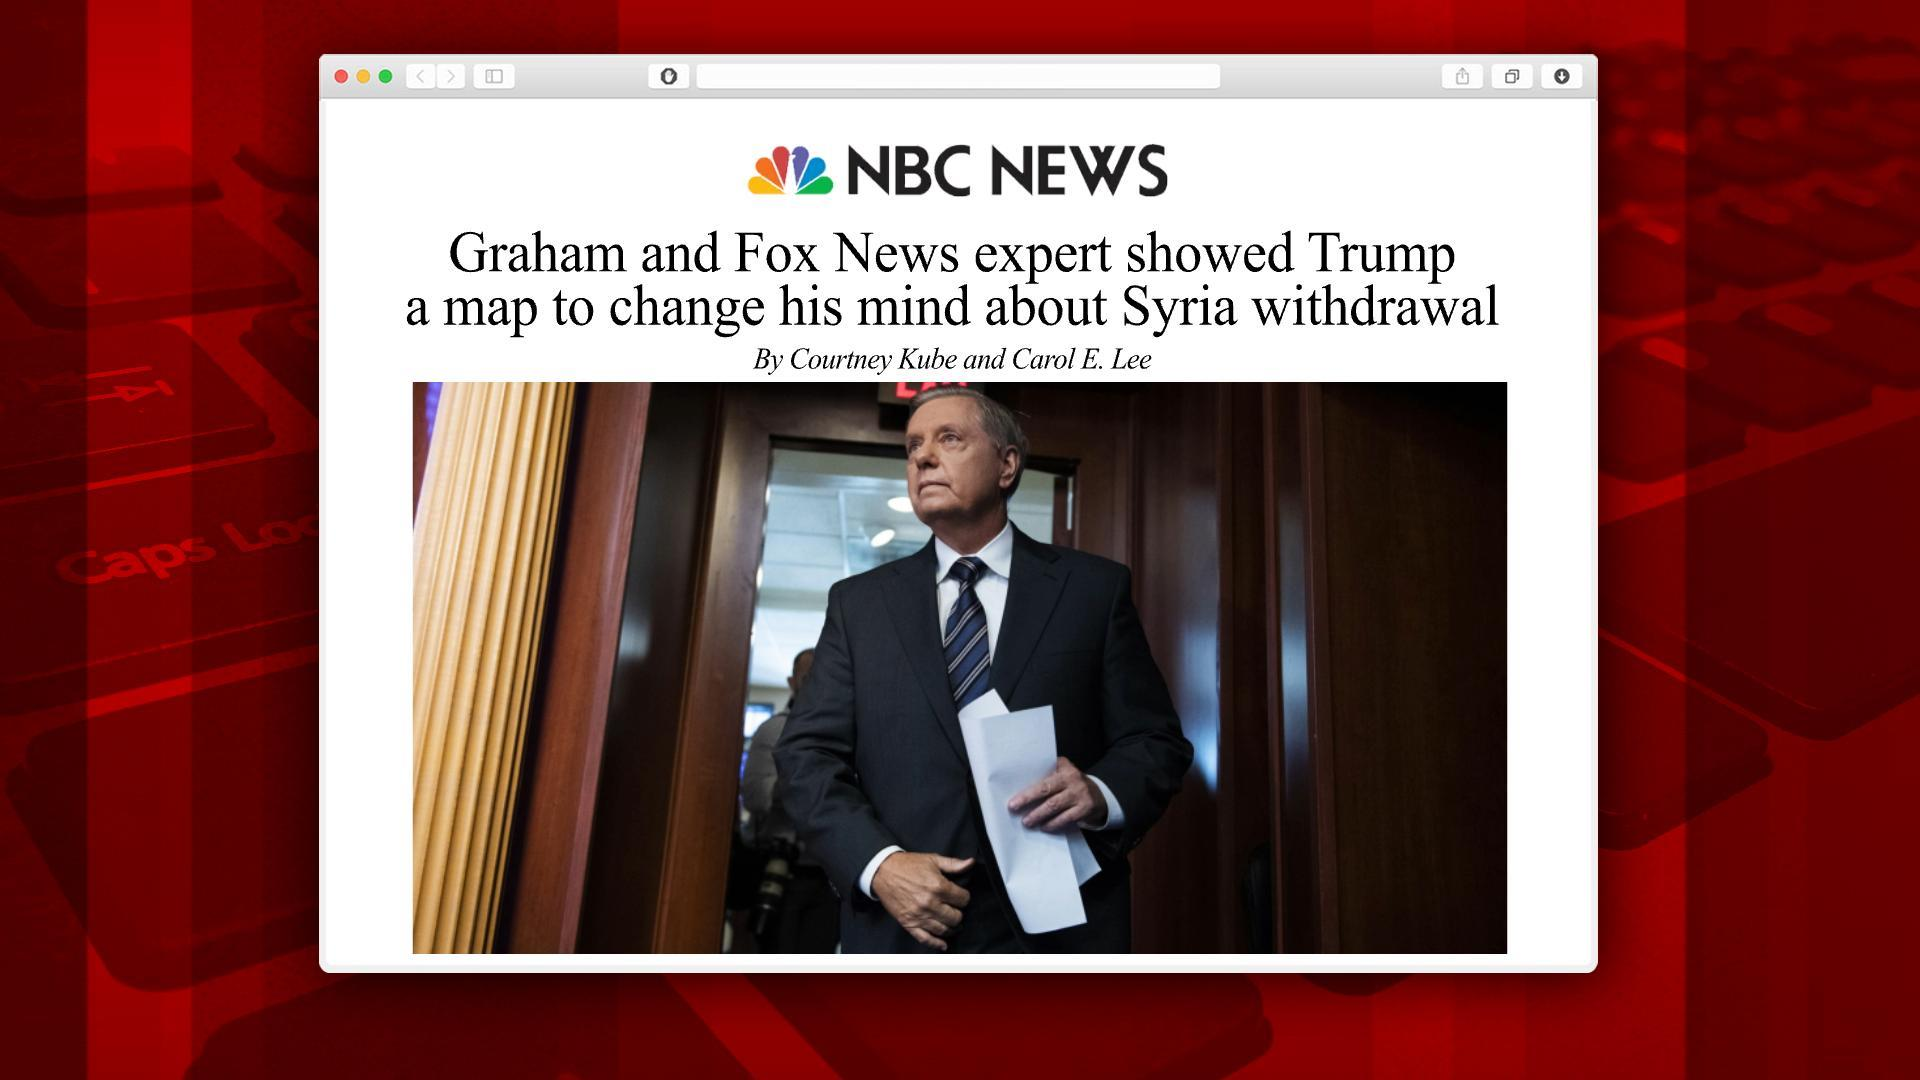 Trump allies used map to change his mind about Syria